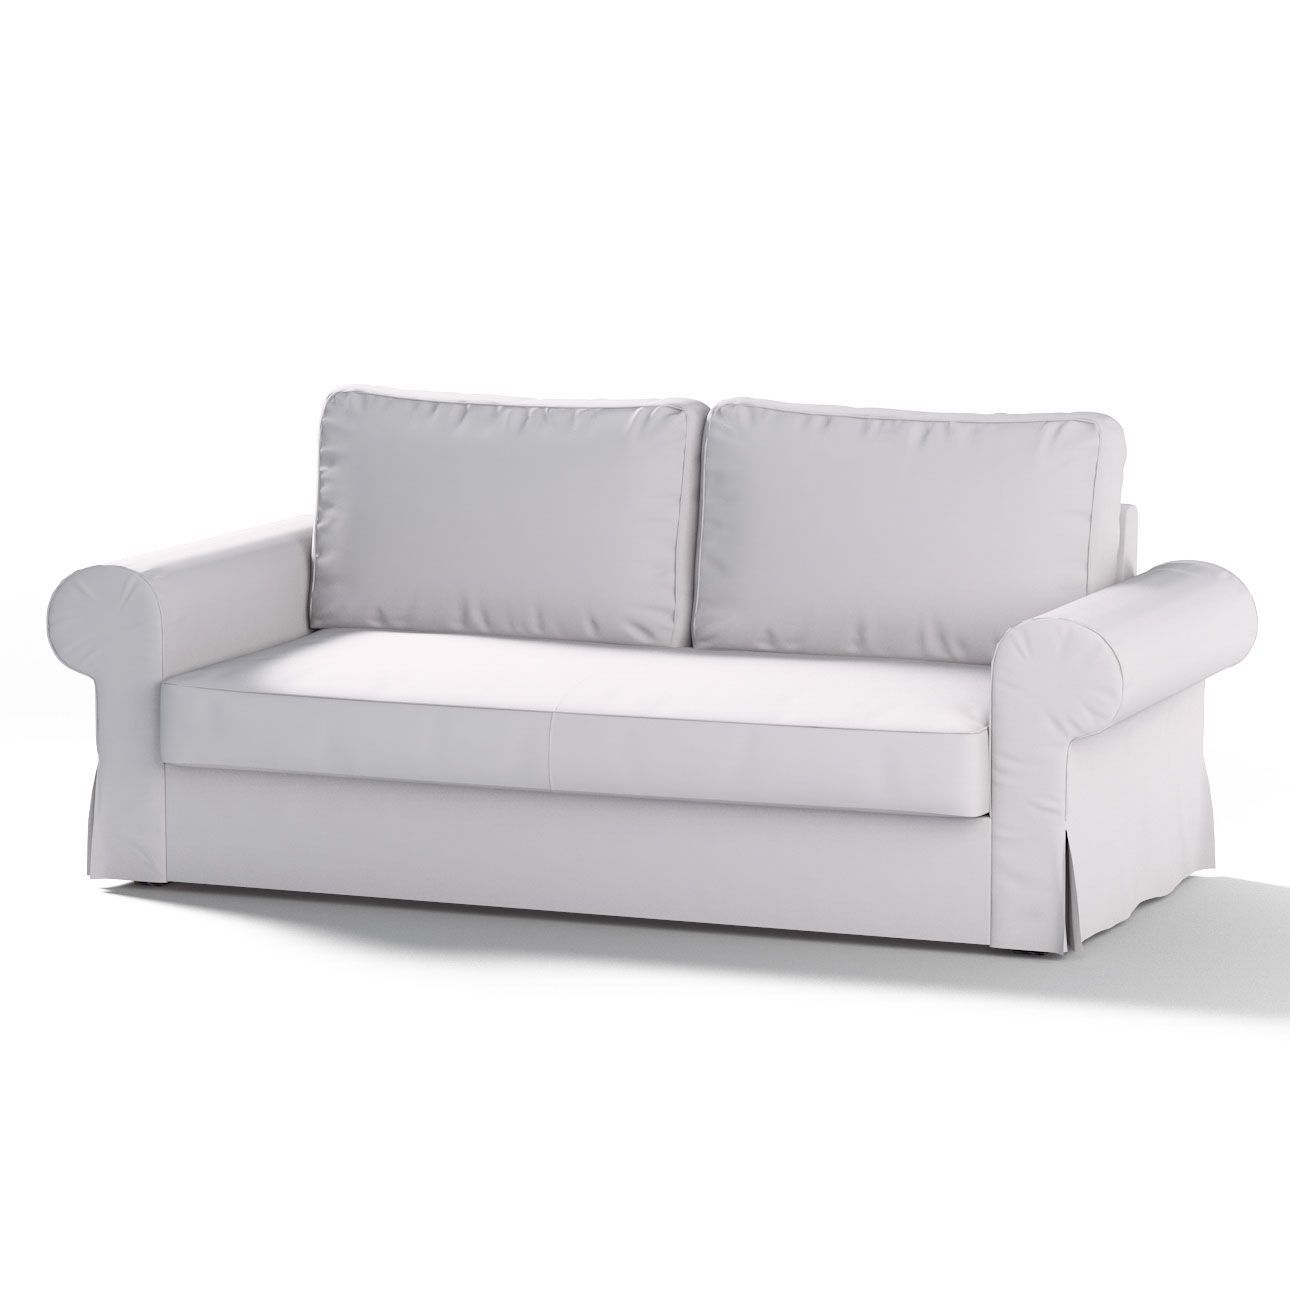 Sofa Sales Hull Sofa Finance Sofa 2 5k Sofa And Stuff Sofa Planet Uk 3 Seat Sofa Bed Sofa Bed Sofa Sale